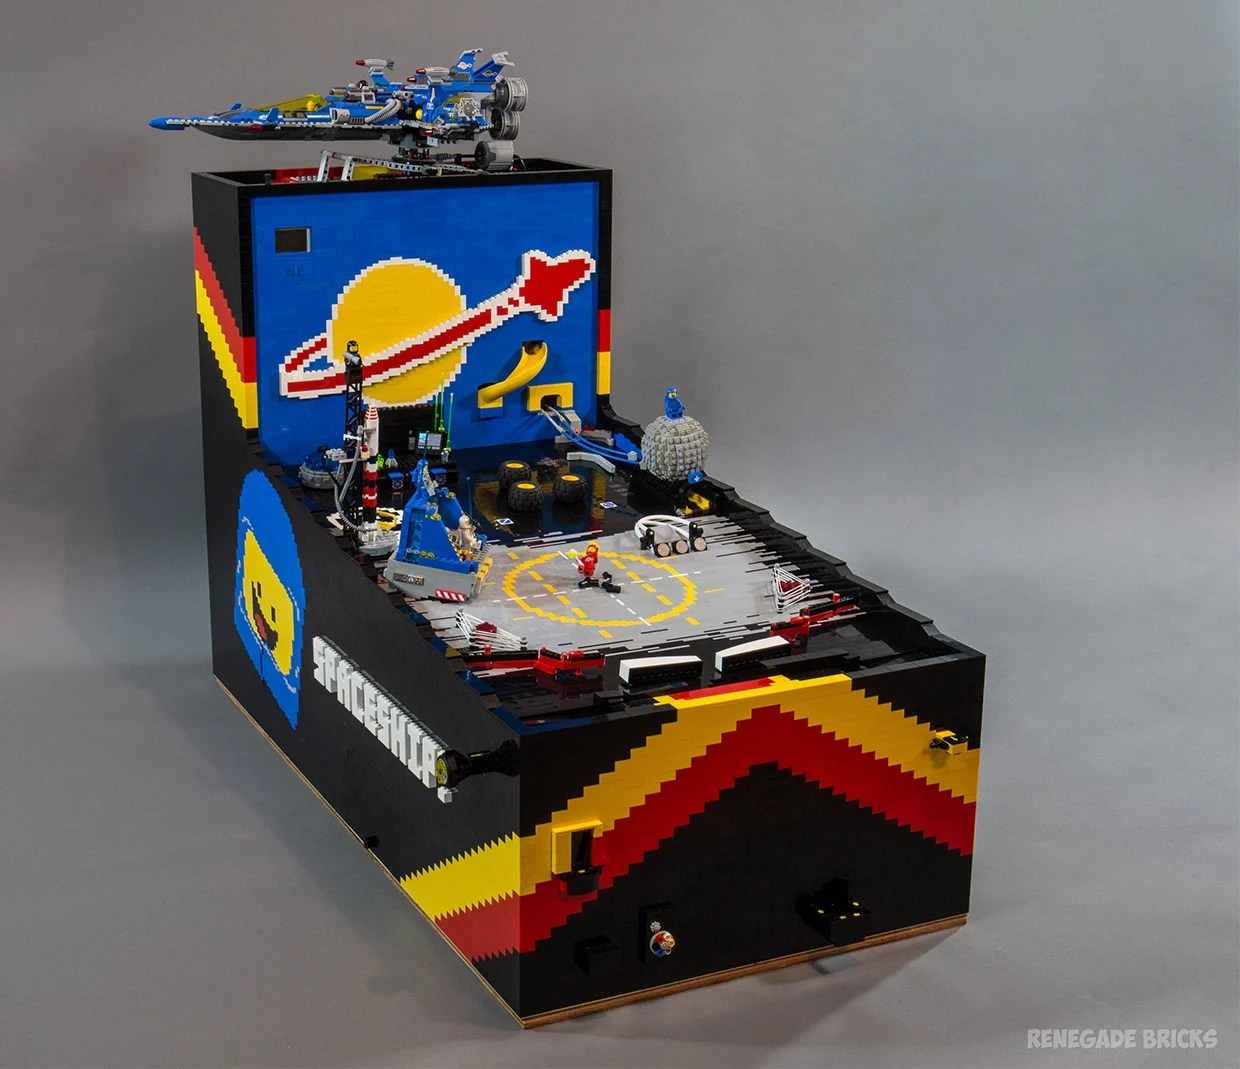 Cool Machines To Build A Working Pinball Machine Made Entirely From Lego Parts